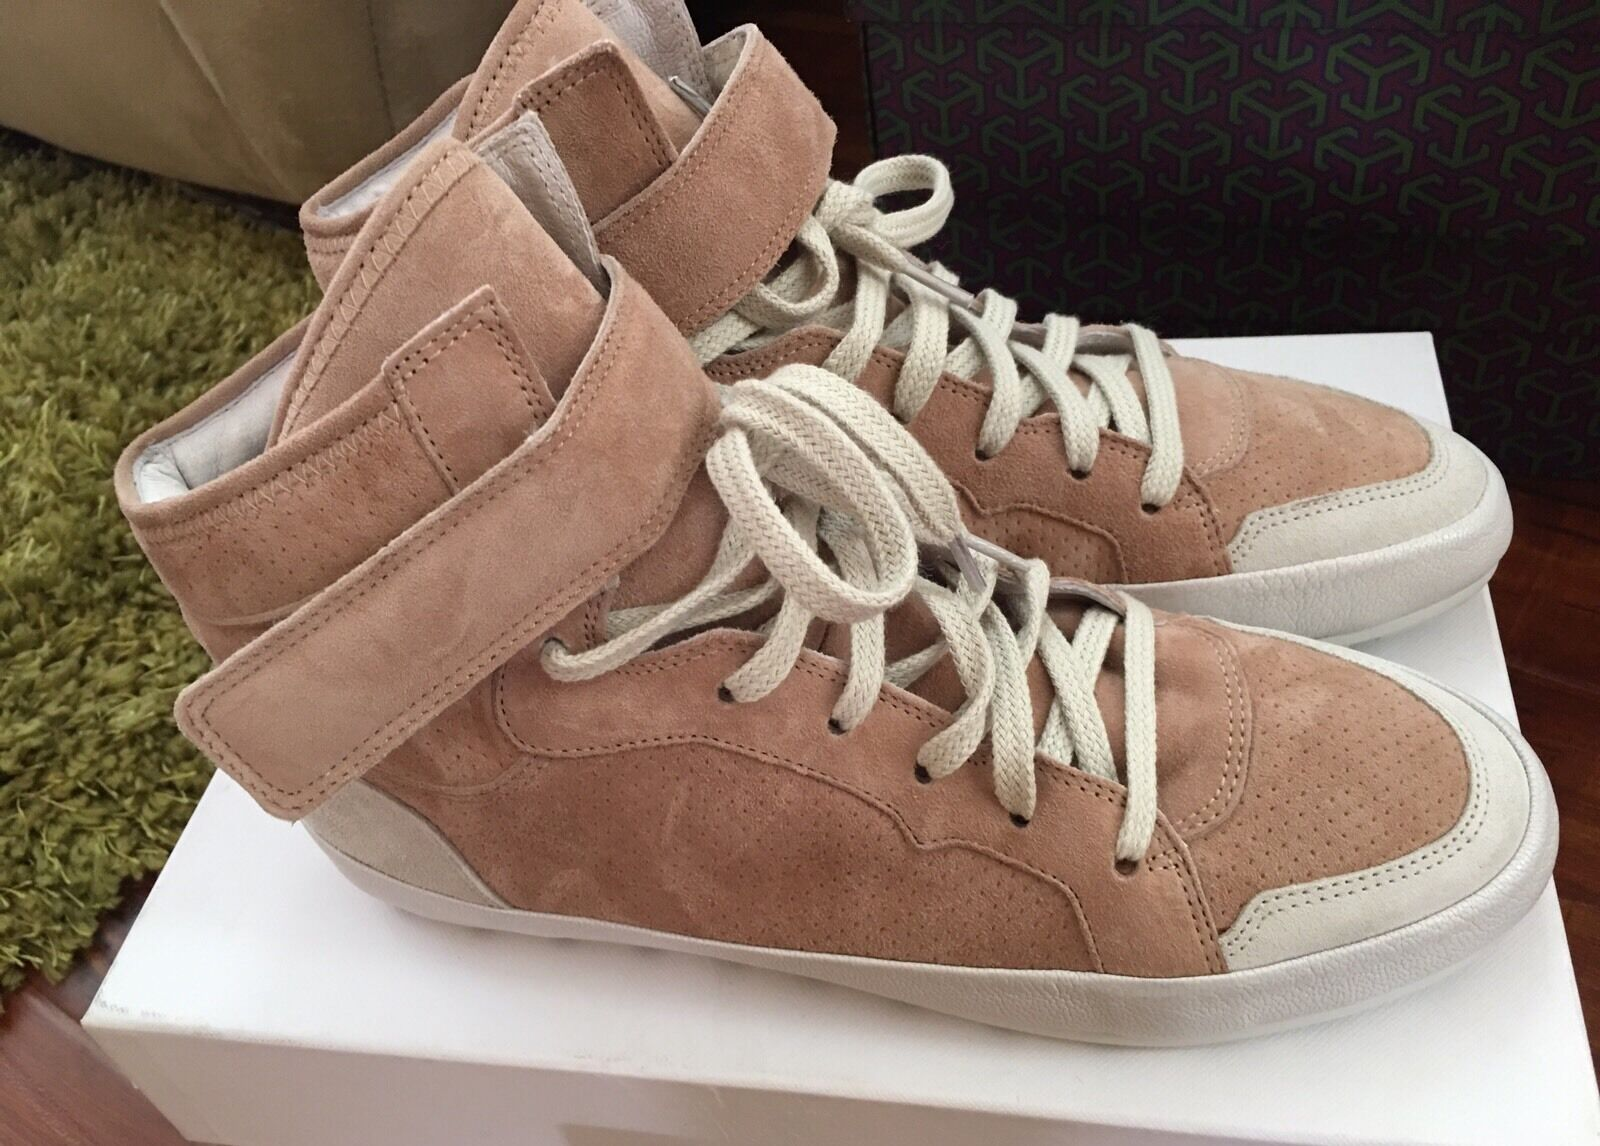 Stylish ISABEL MARANT Étoile Bessy leather sneakers High Tops 40 Eur 9 Us  550